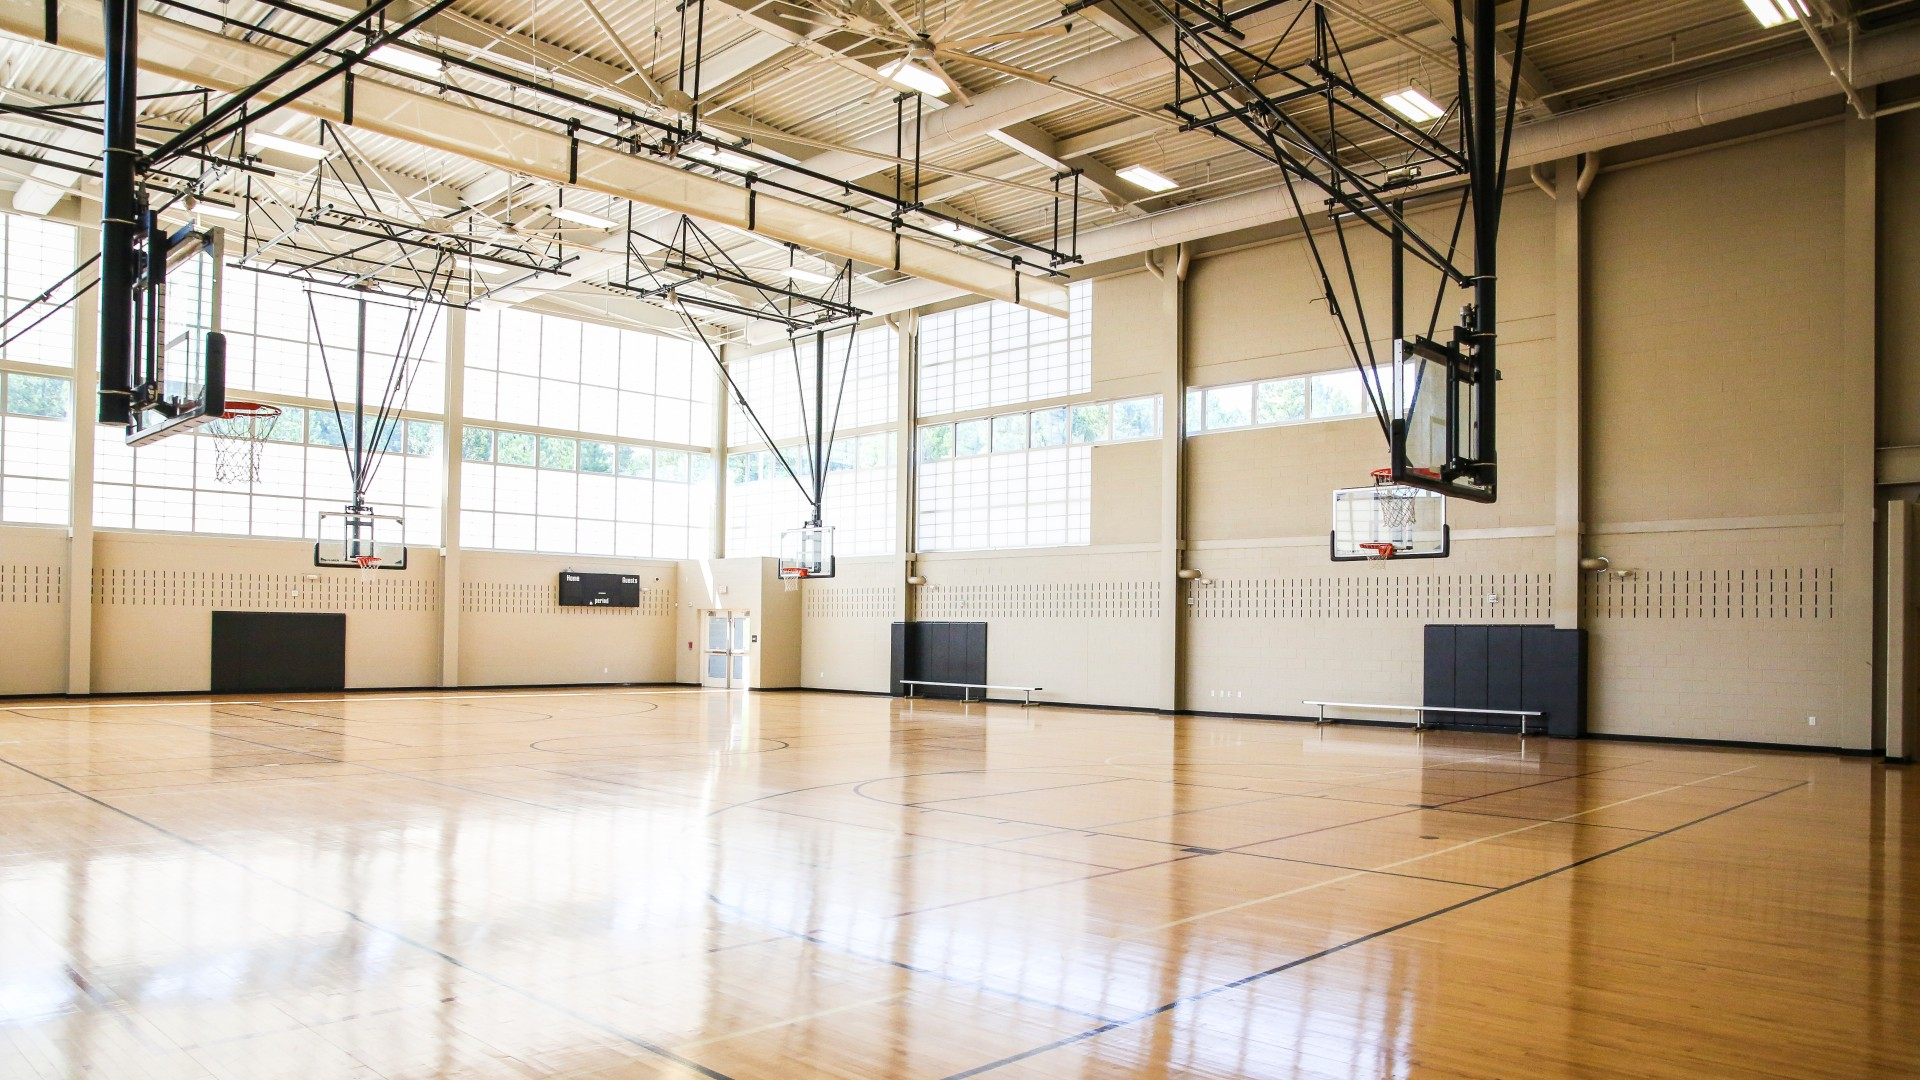 Indoor gymnasium at Abbotts Creek Park with several basketball courts and hoops.